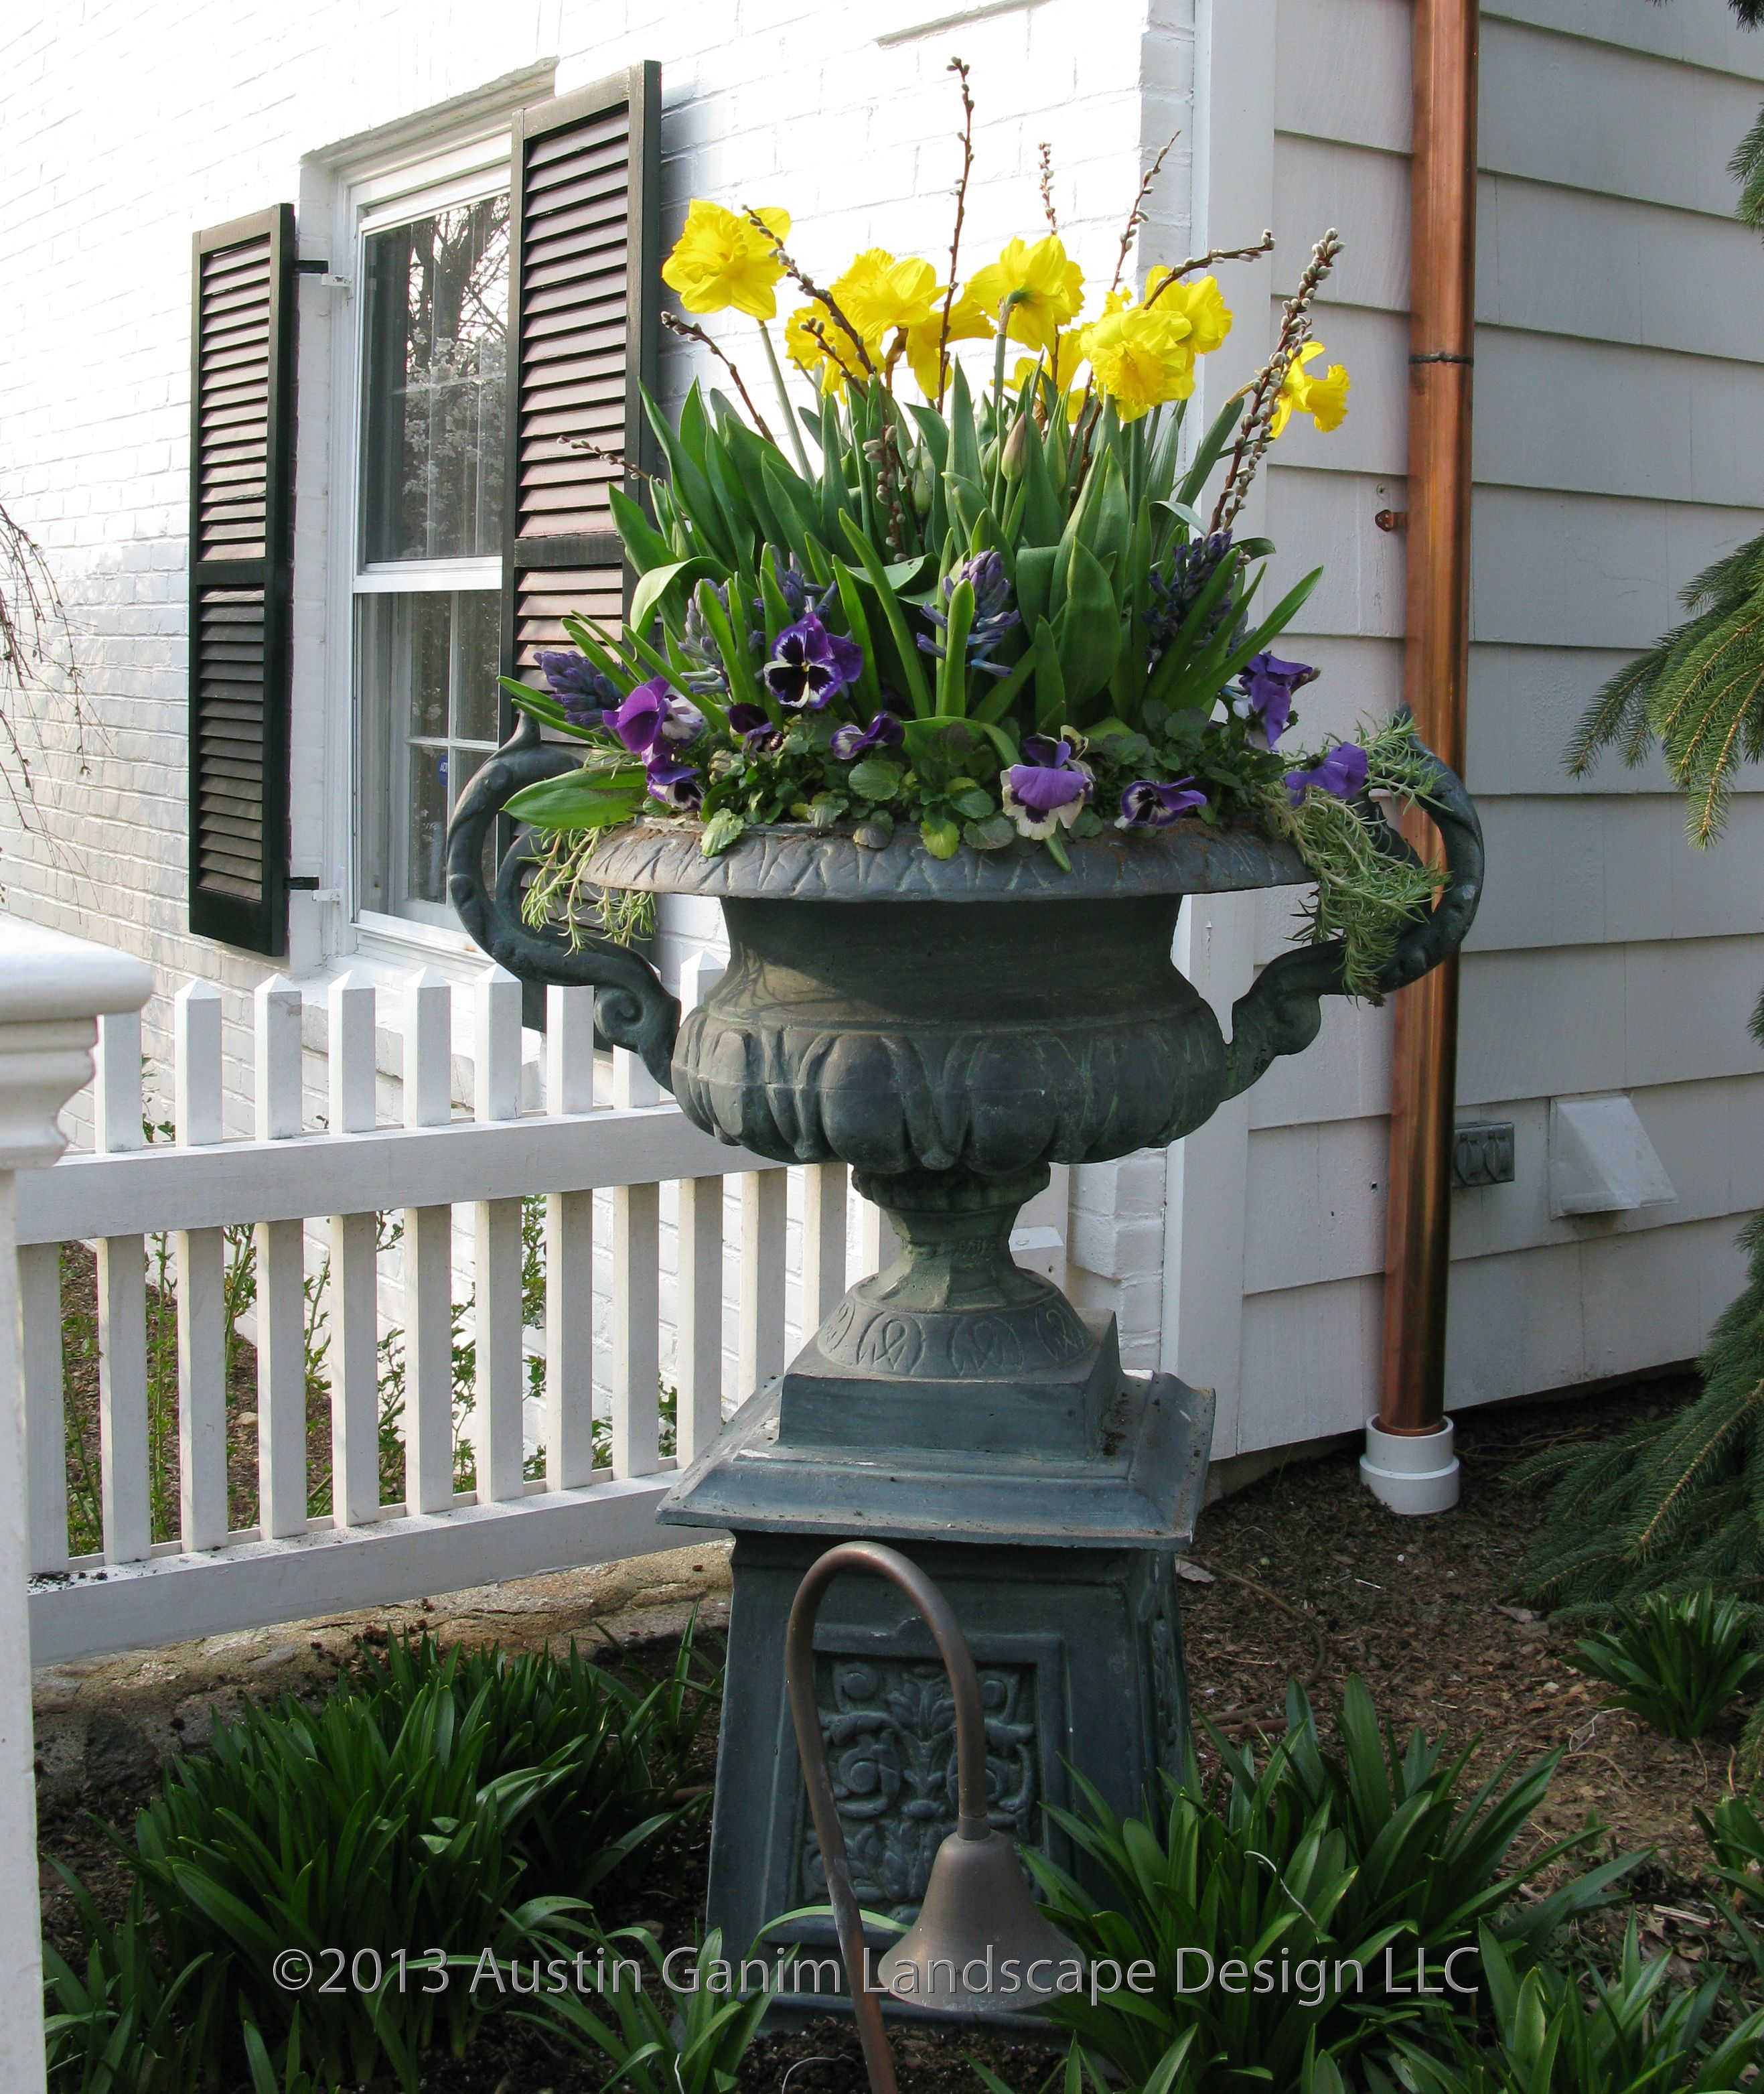 Urn Decorations For Spring Spring Planter With Yellow Daffodils Pussy Willow And Pansies